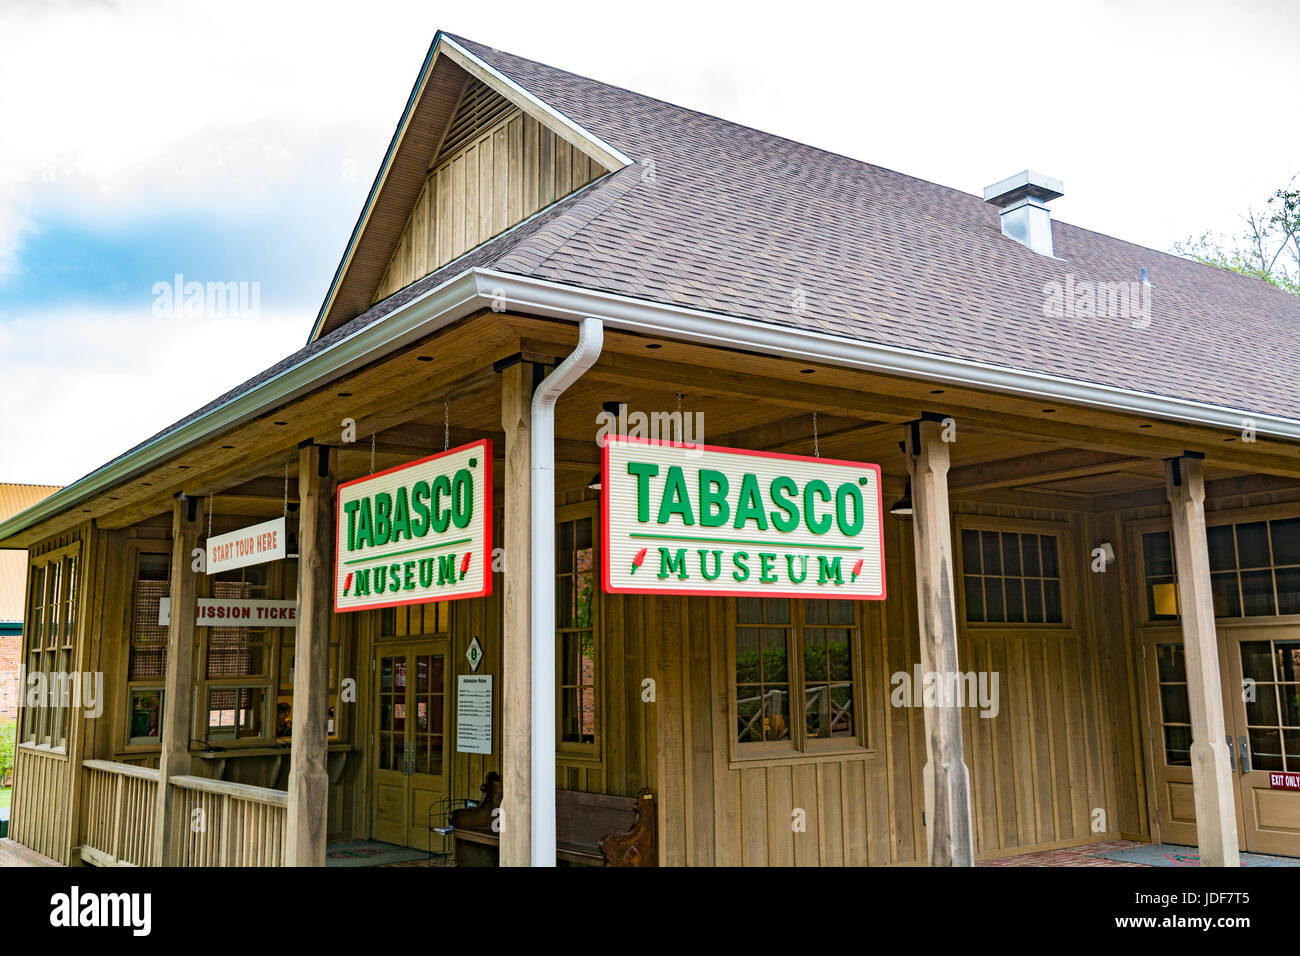 Louisiana, Avery Island, Tabasco Factory, Museum - Stock Image